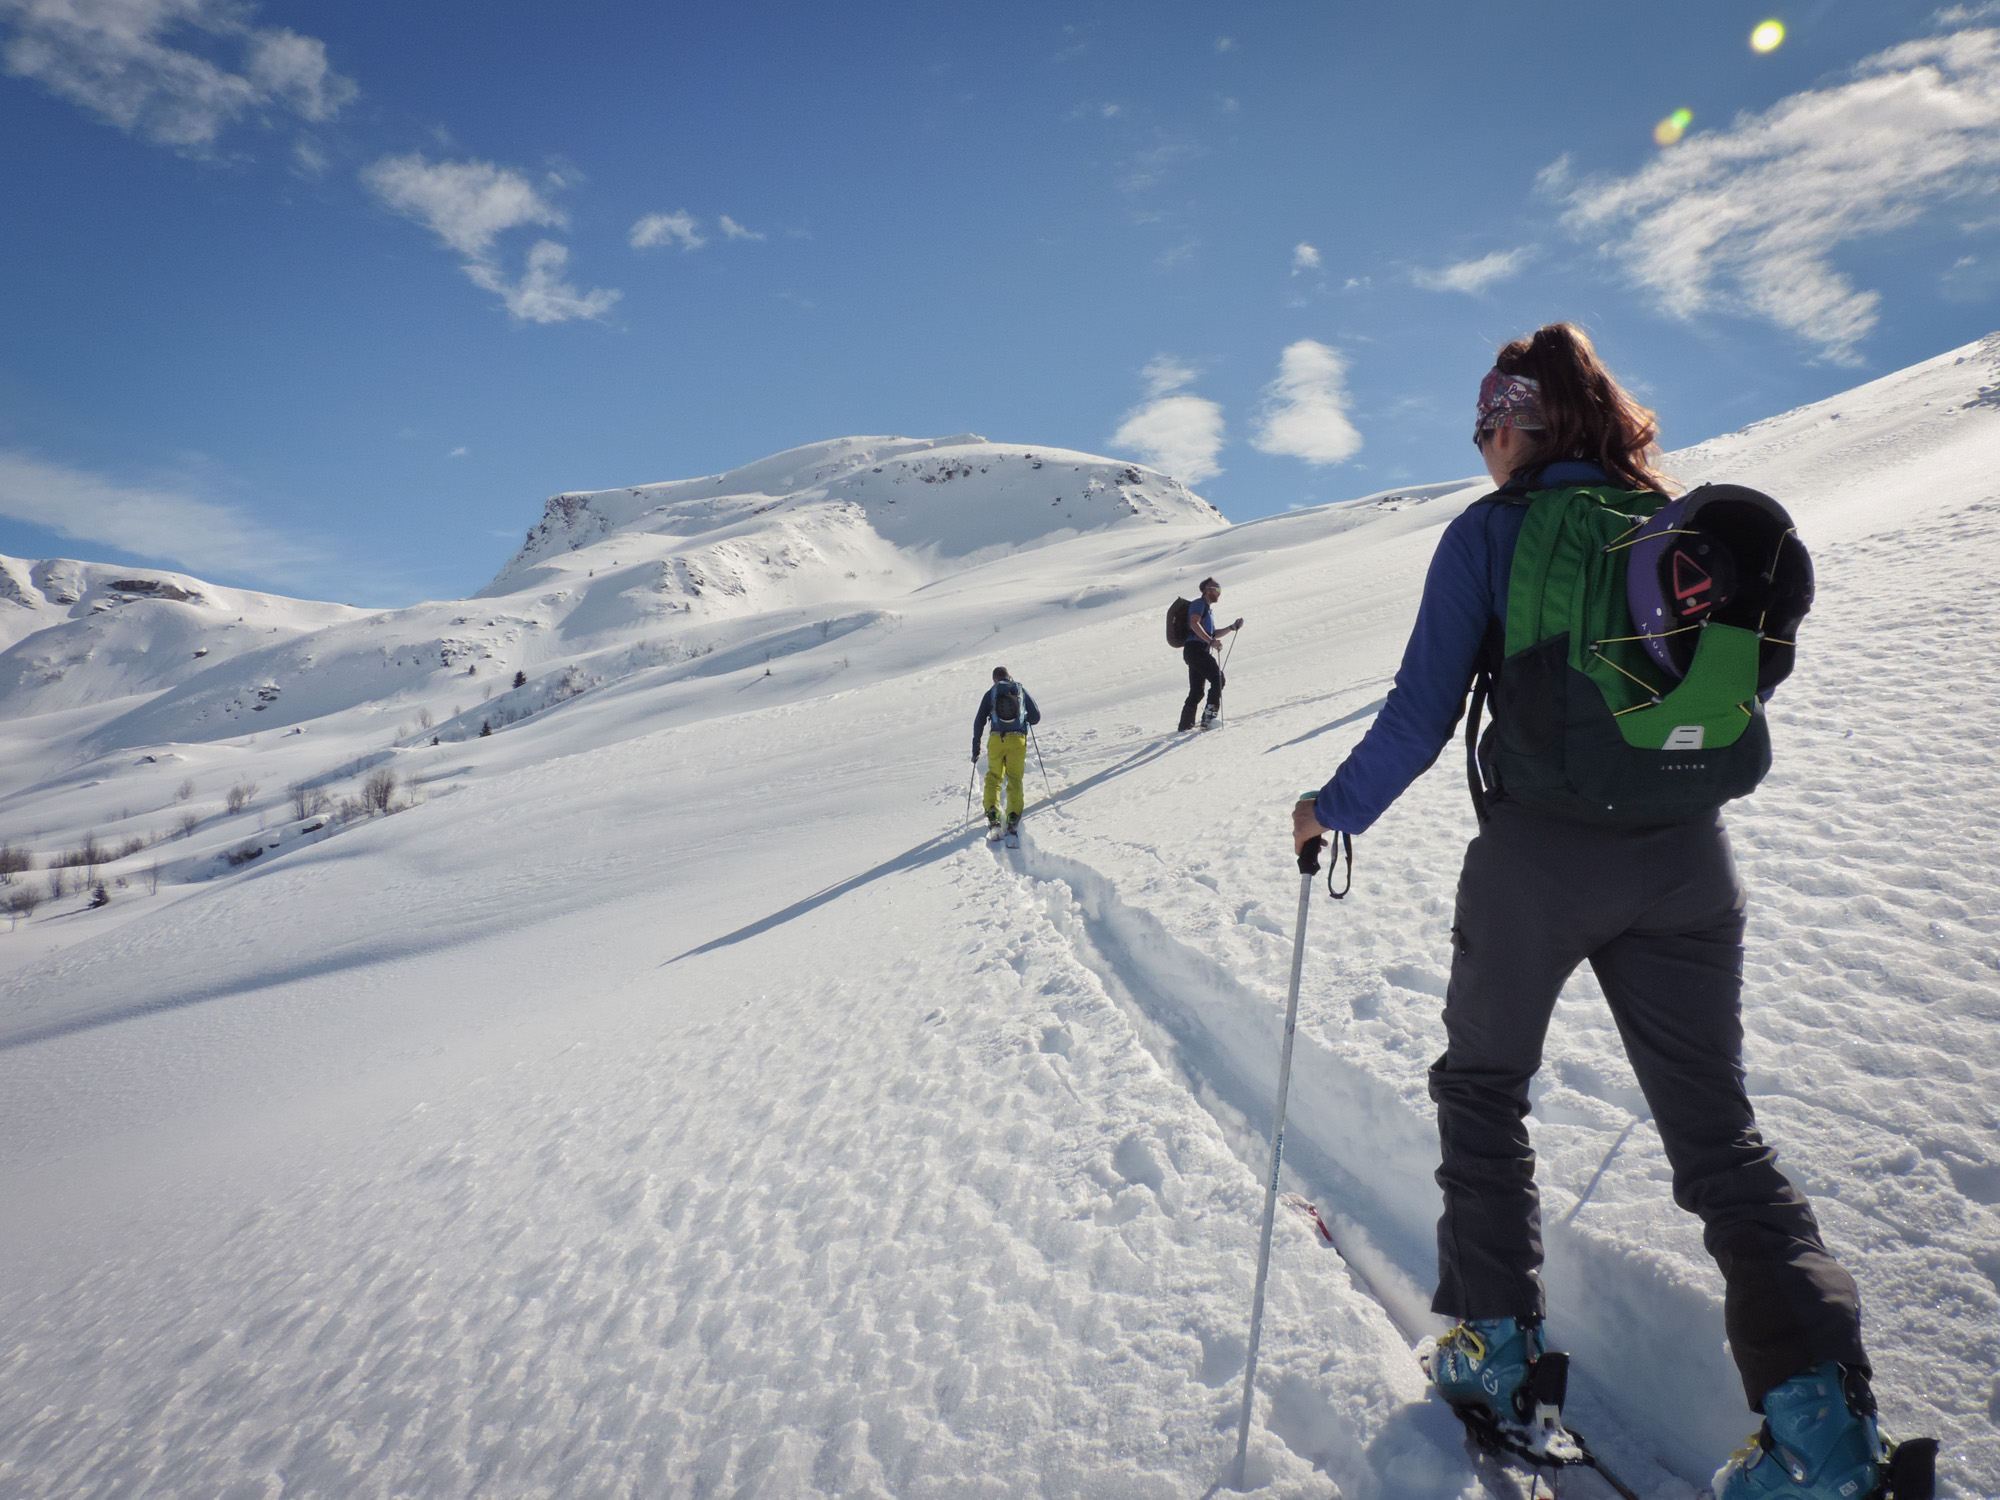 The Best Place for Off-Piste Skiing in France – The Ultimate Guide